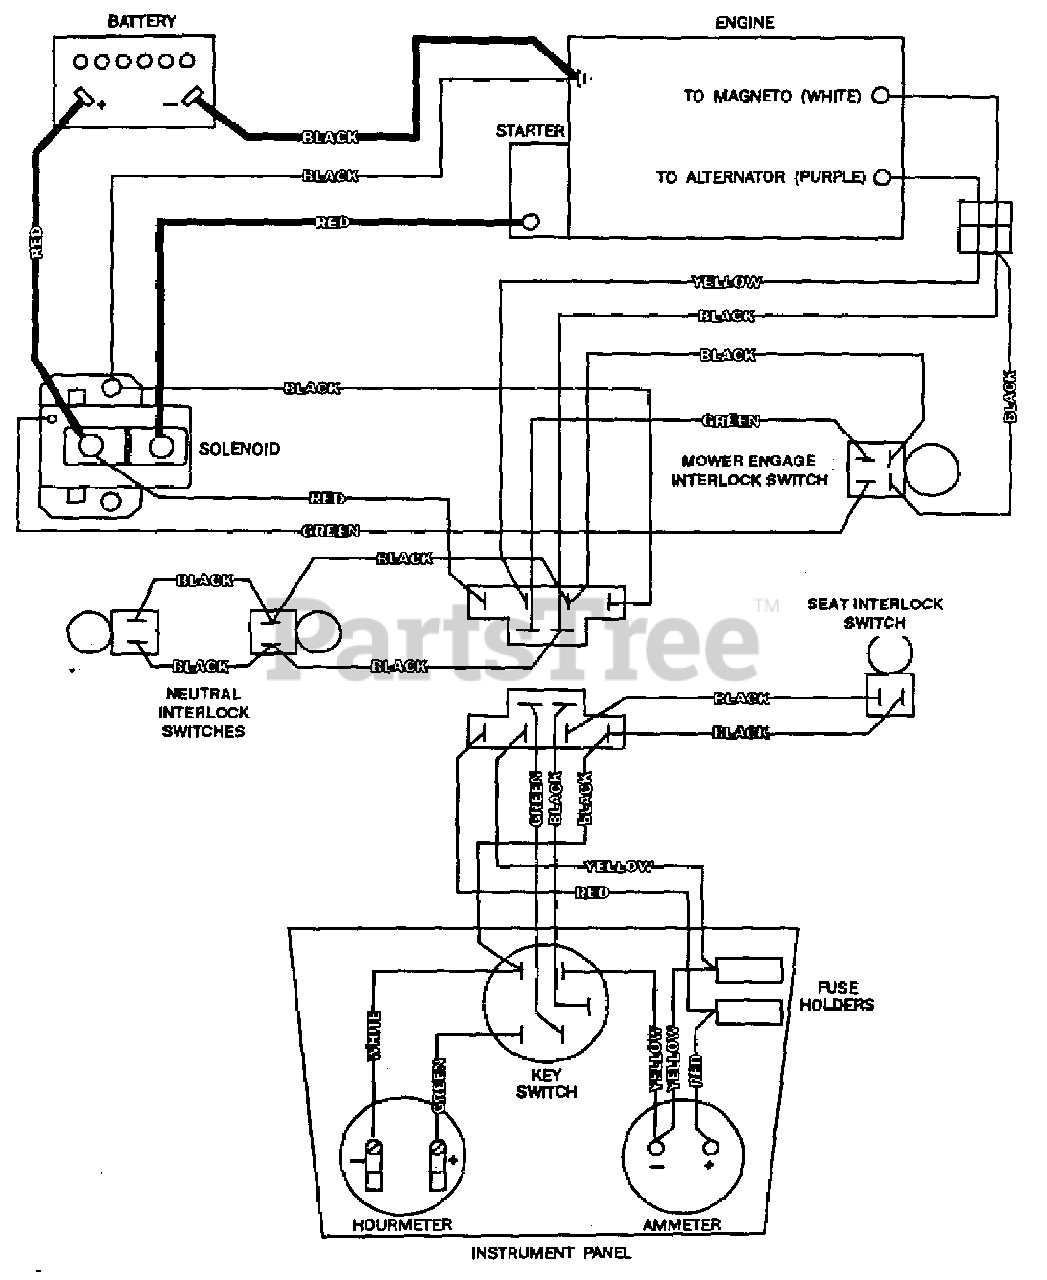 Scag Wiring Diagram from www.partstree.com